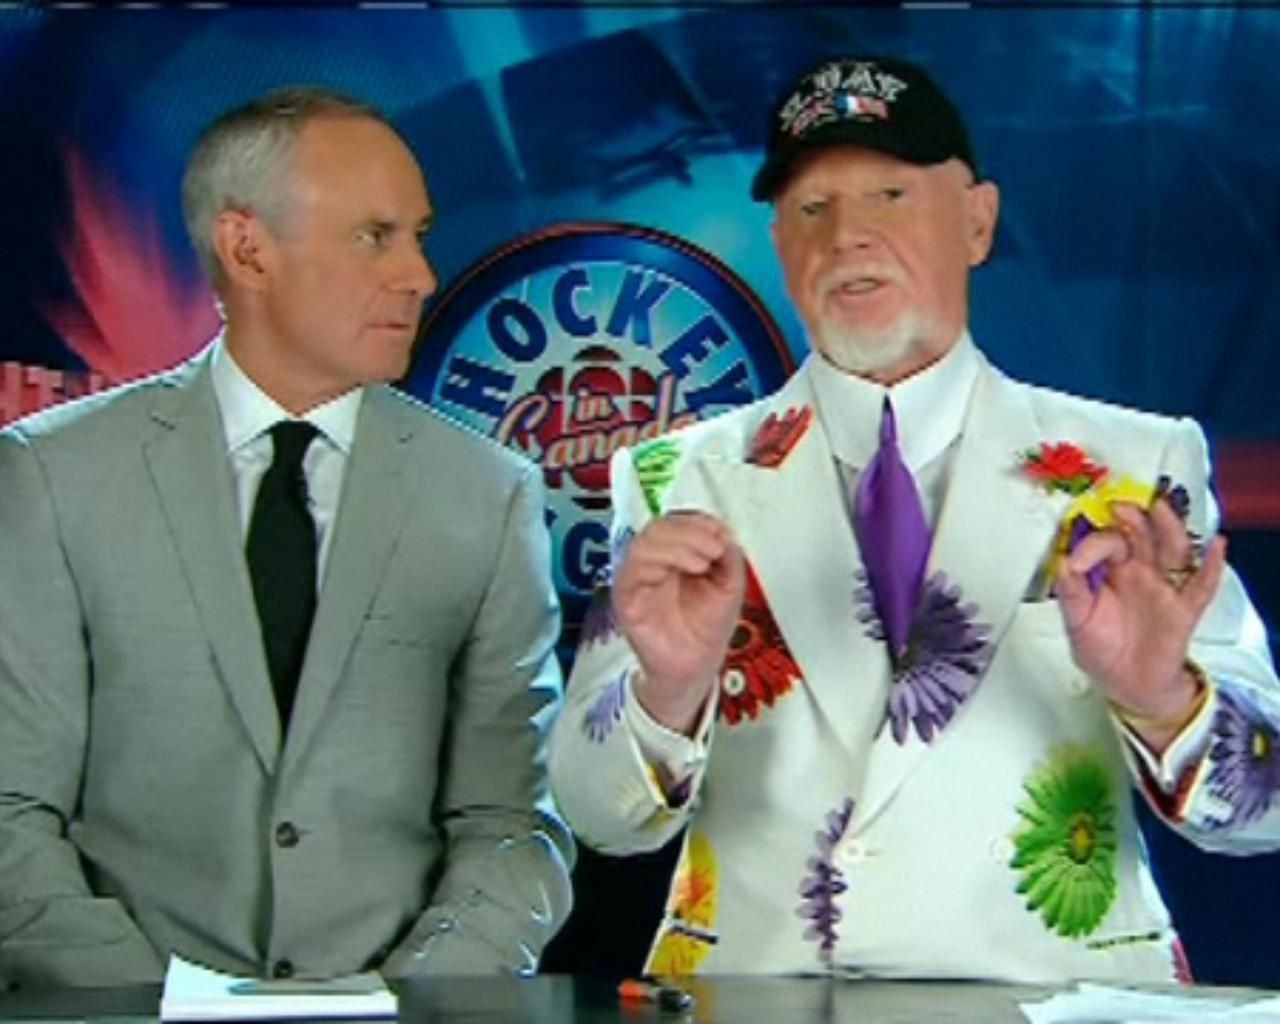 A Floral Print And Patriotic Chapeau For Grapes On June 6 CBC Way To Go